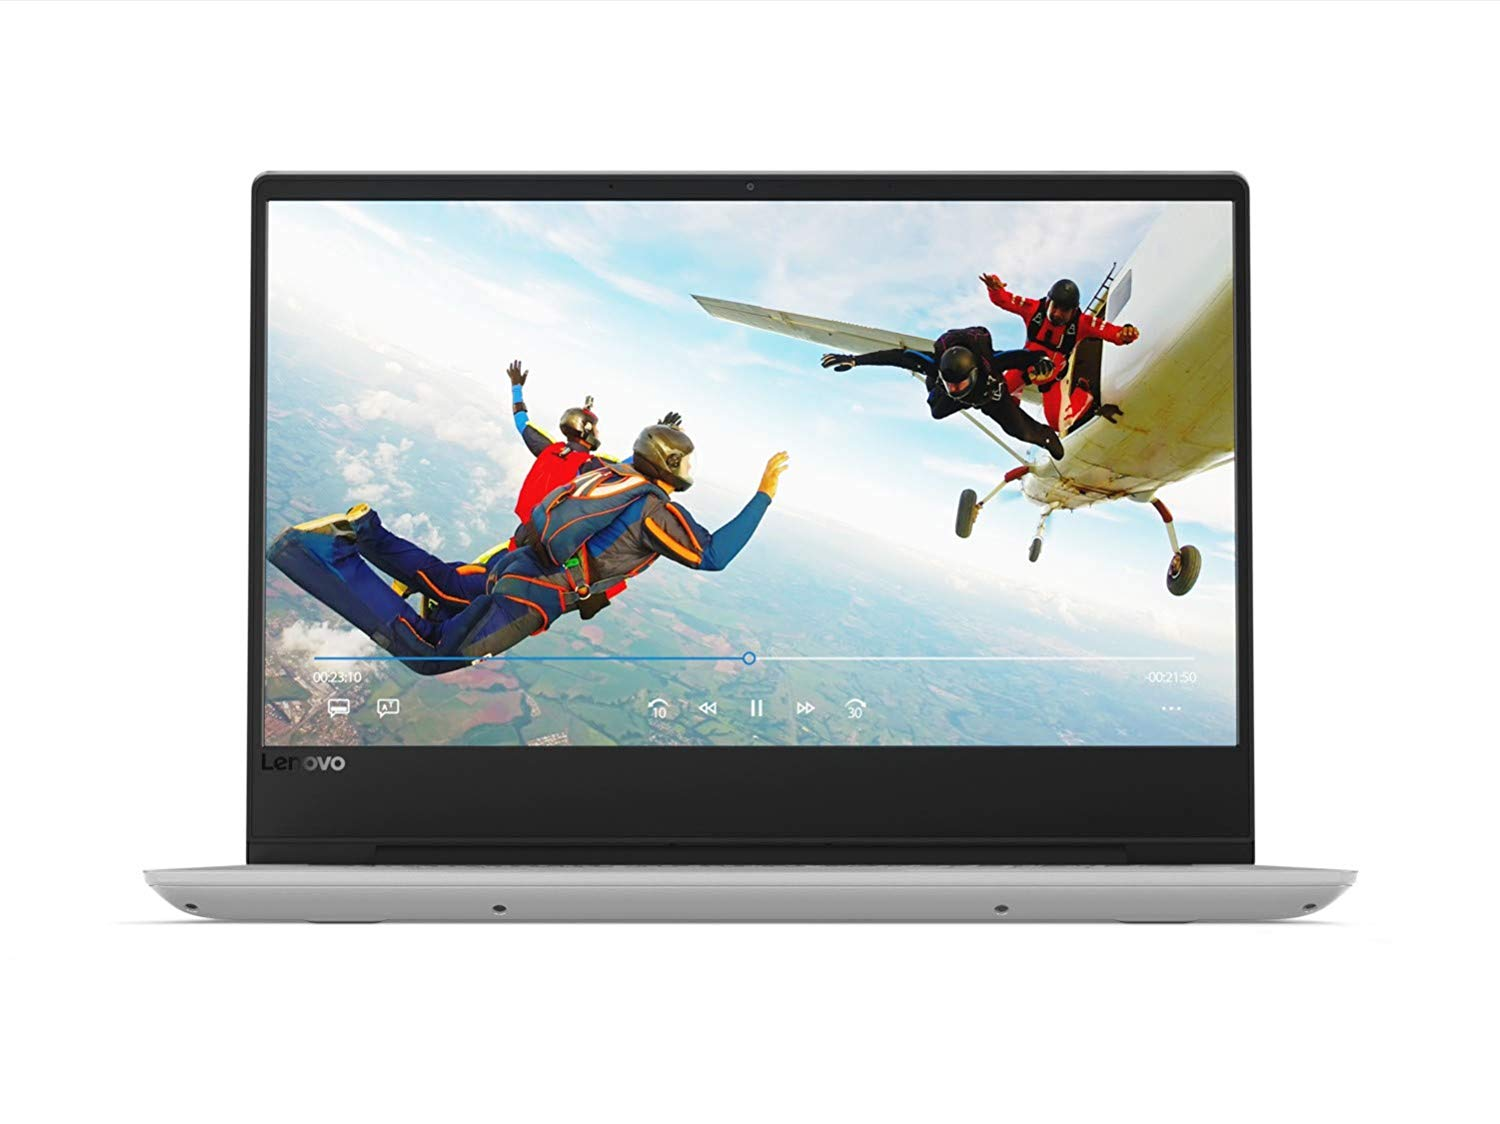 Lenovo Ideapad 330s (Best Laptop Under ₹40,000)